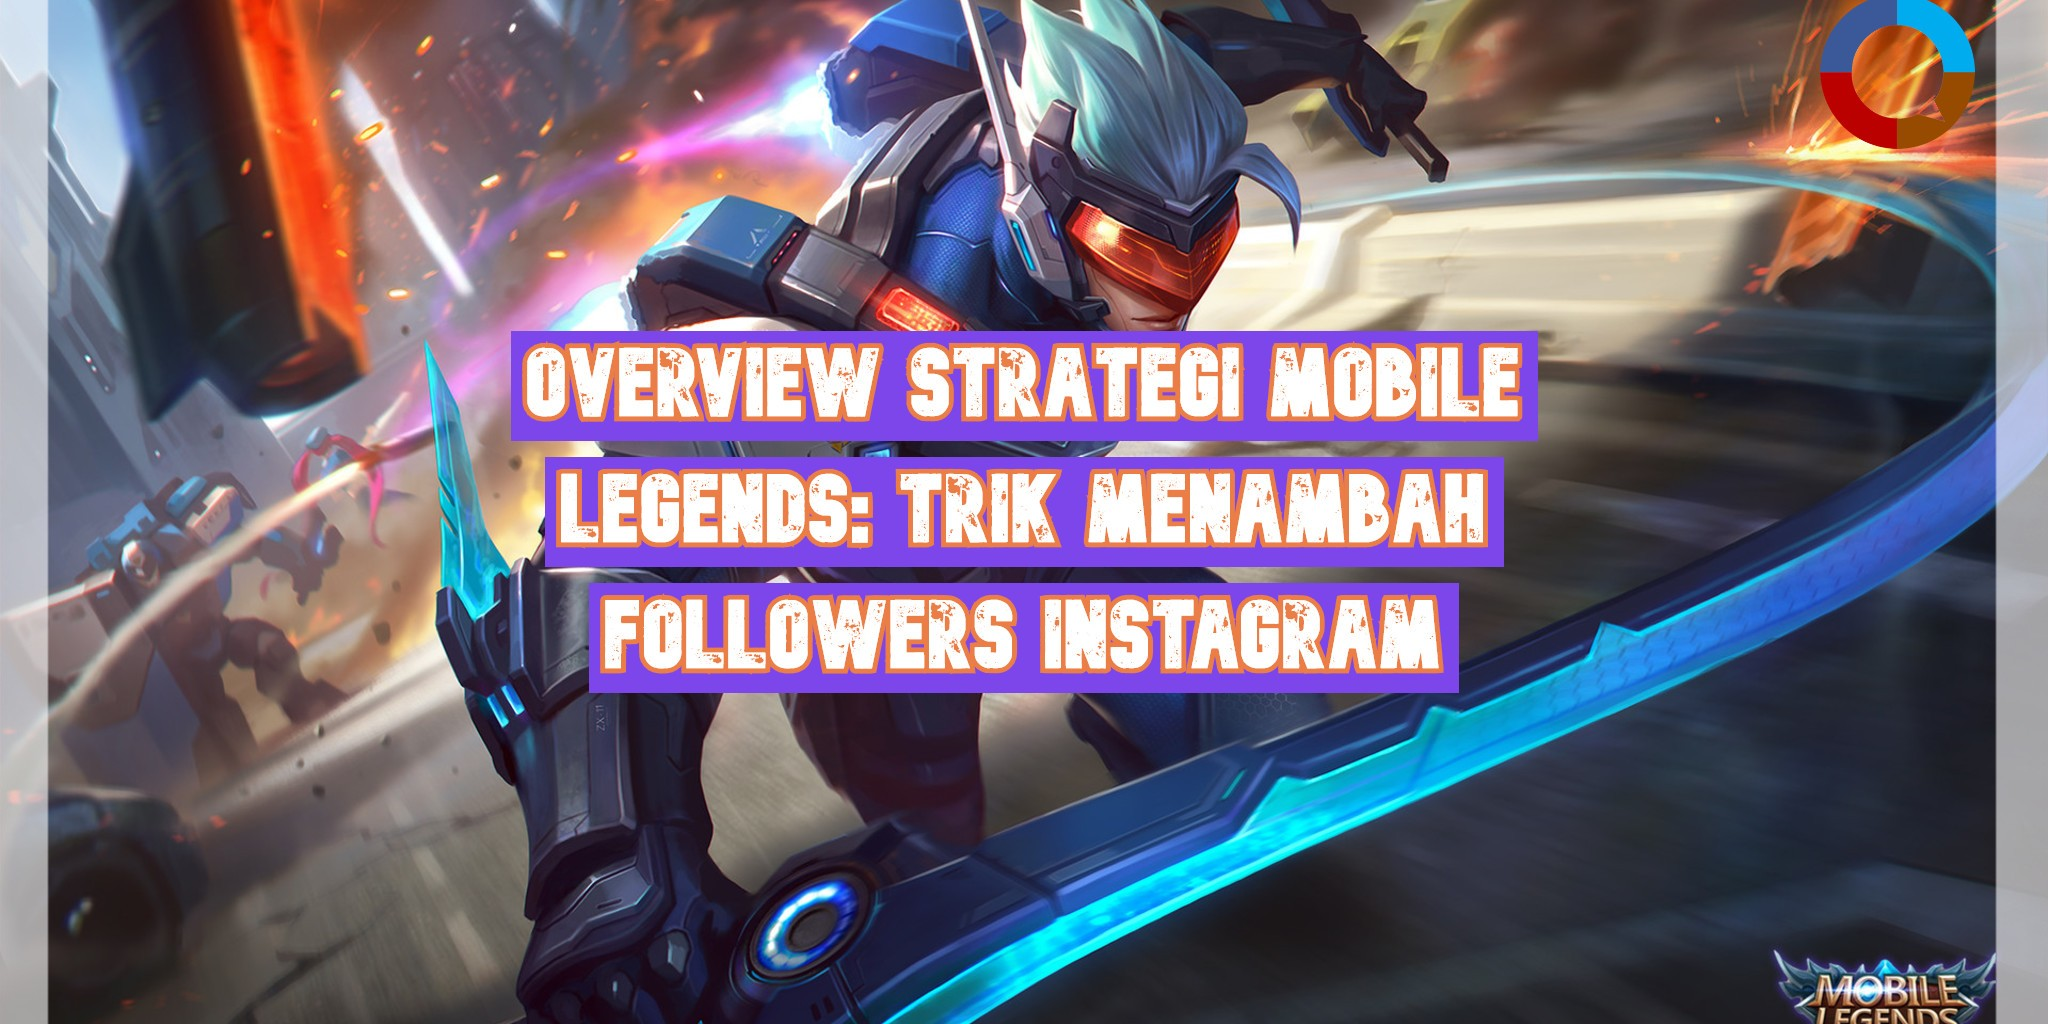 Overview Trik Menambah Followers Instagram dengan Strategi Mobile Legends